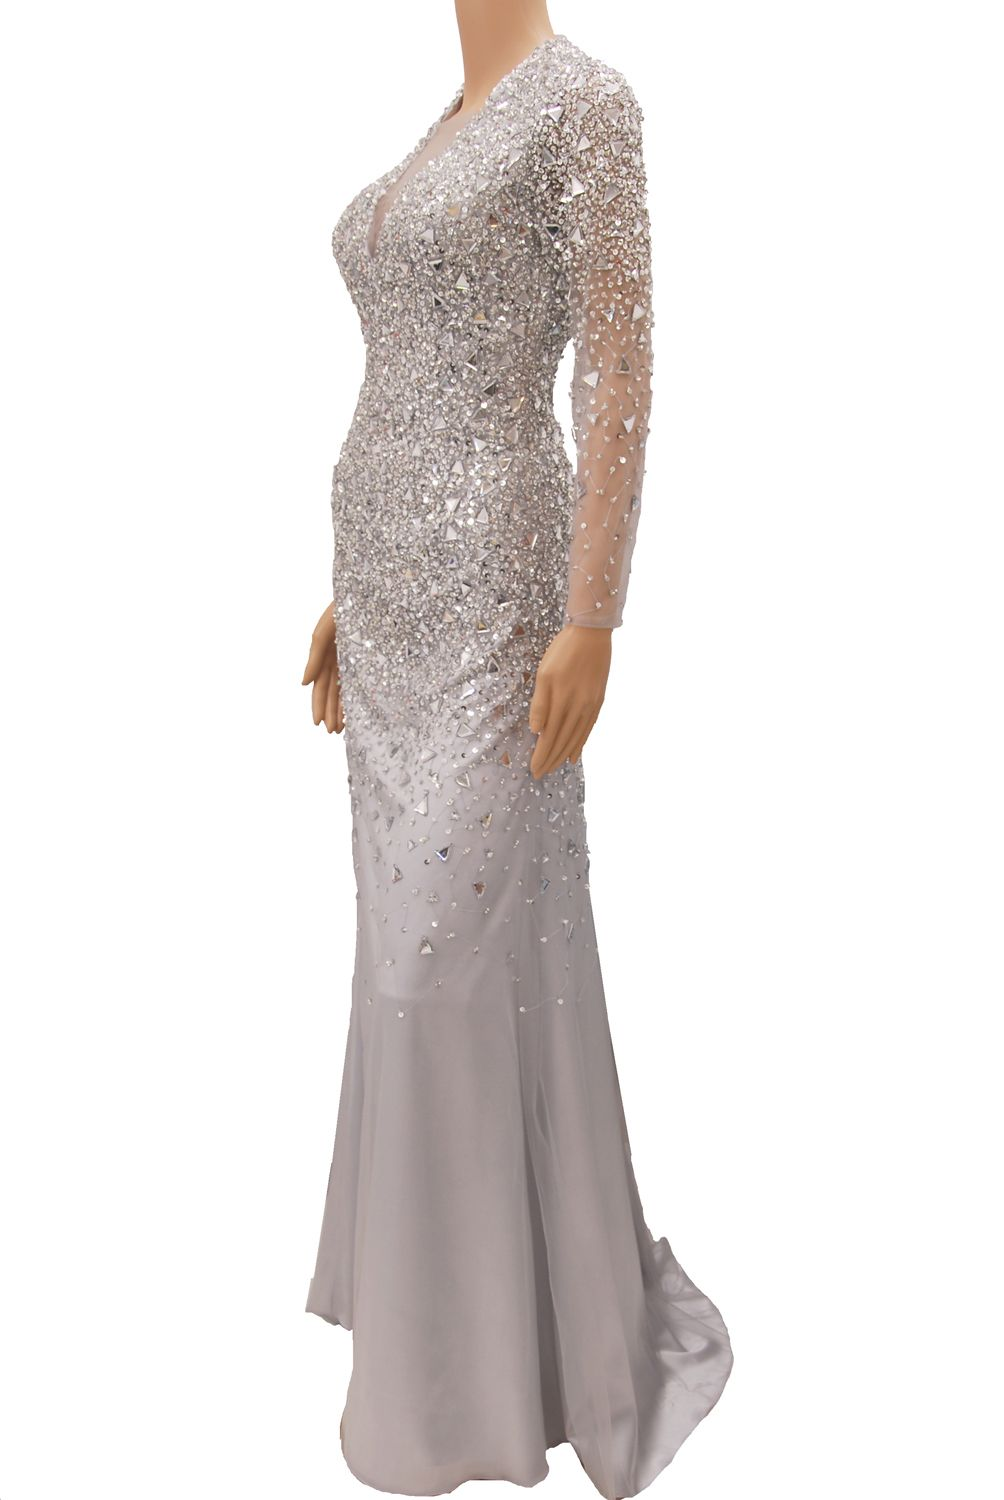 Silver Sequin Formal Dress & 20 Great Ideas - Dresses Ask